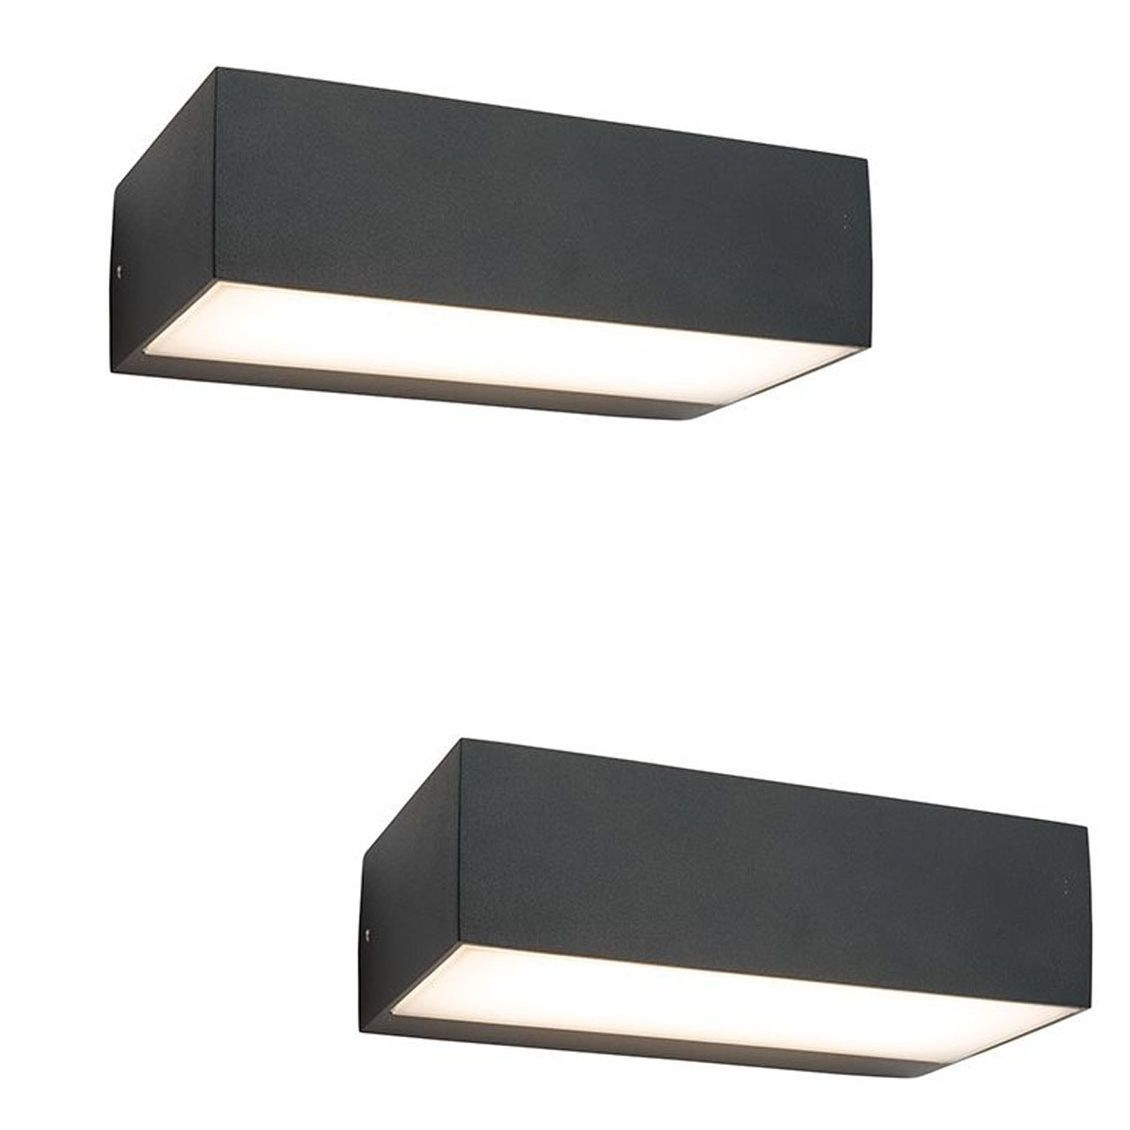 Furniture : Pair Saxby Kempton Matt Black Rectangular Outdoor Led Intended For Outdoor Led Wall Lights For House Sign With Door Number (#12 of 15)